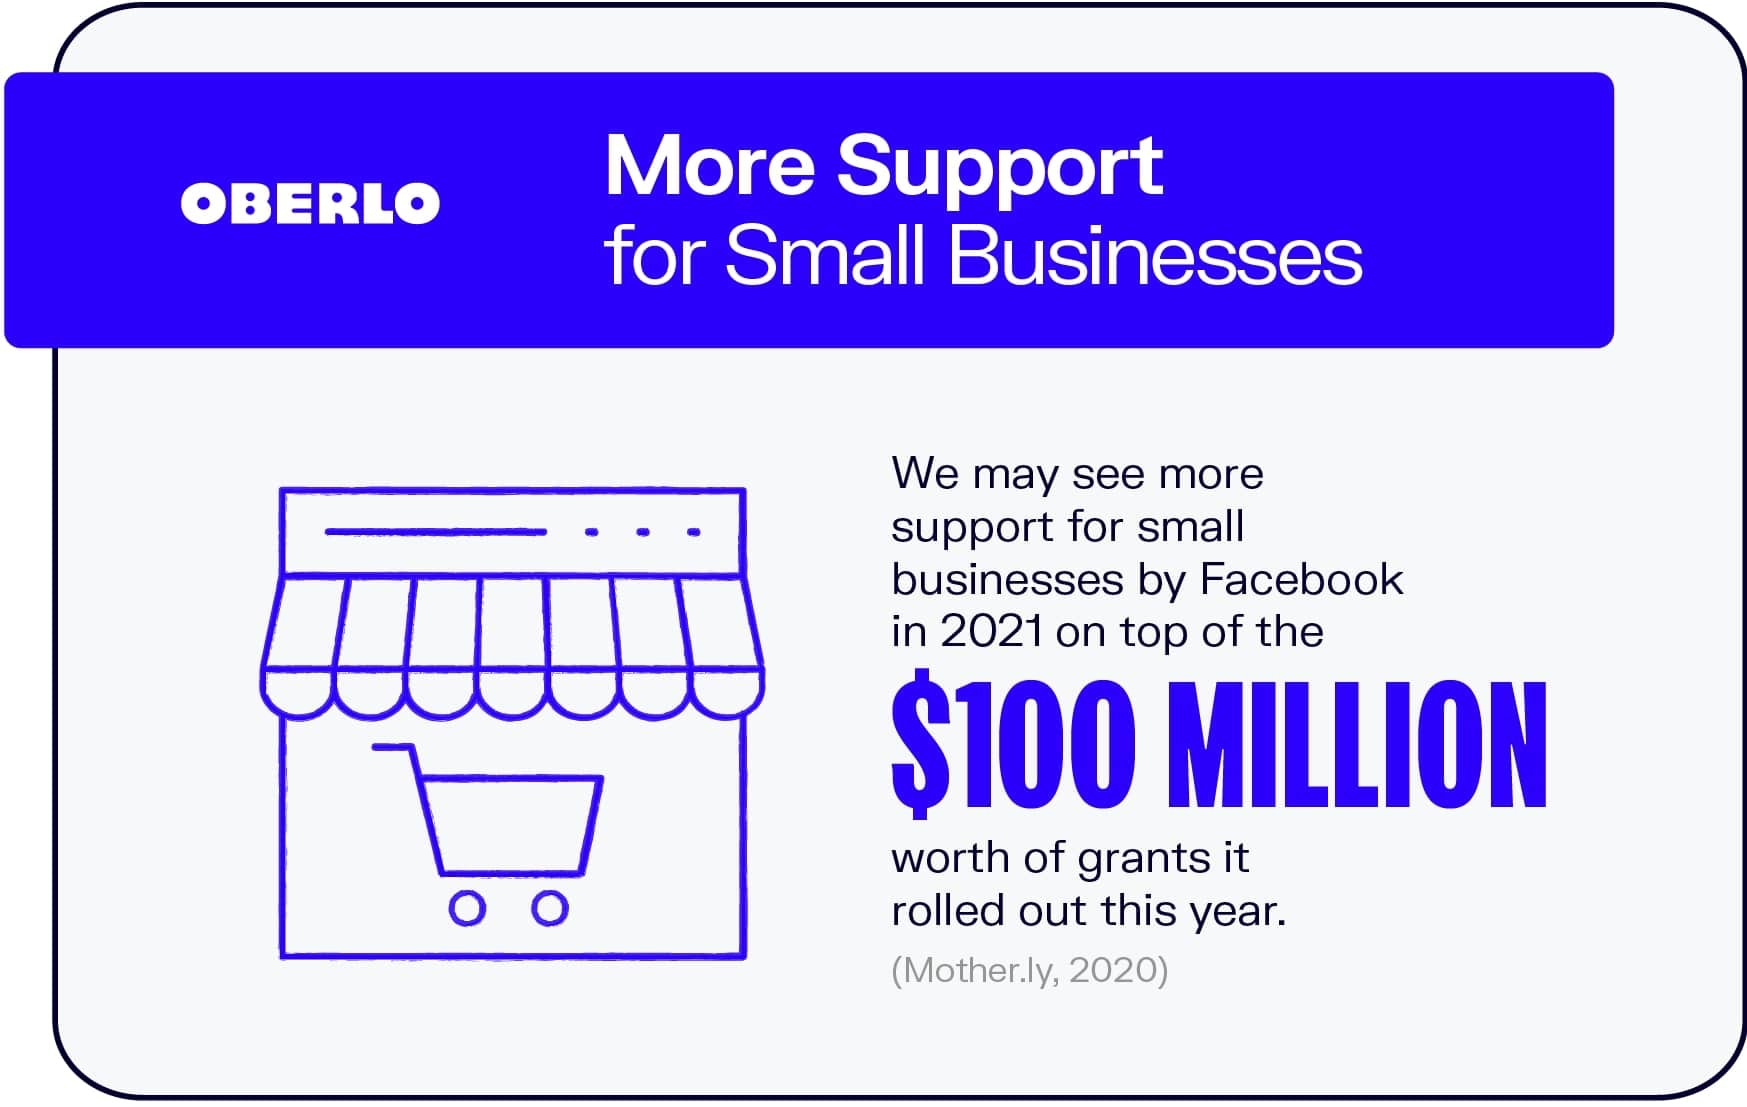 More Support for Small Businesses